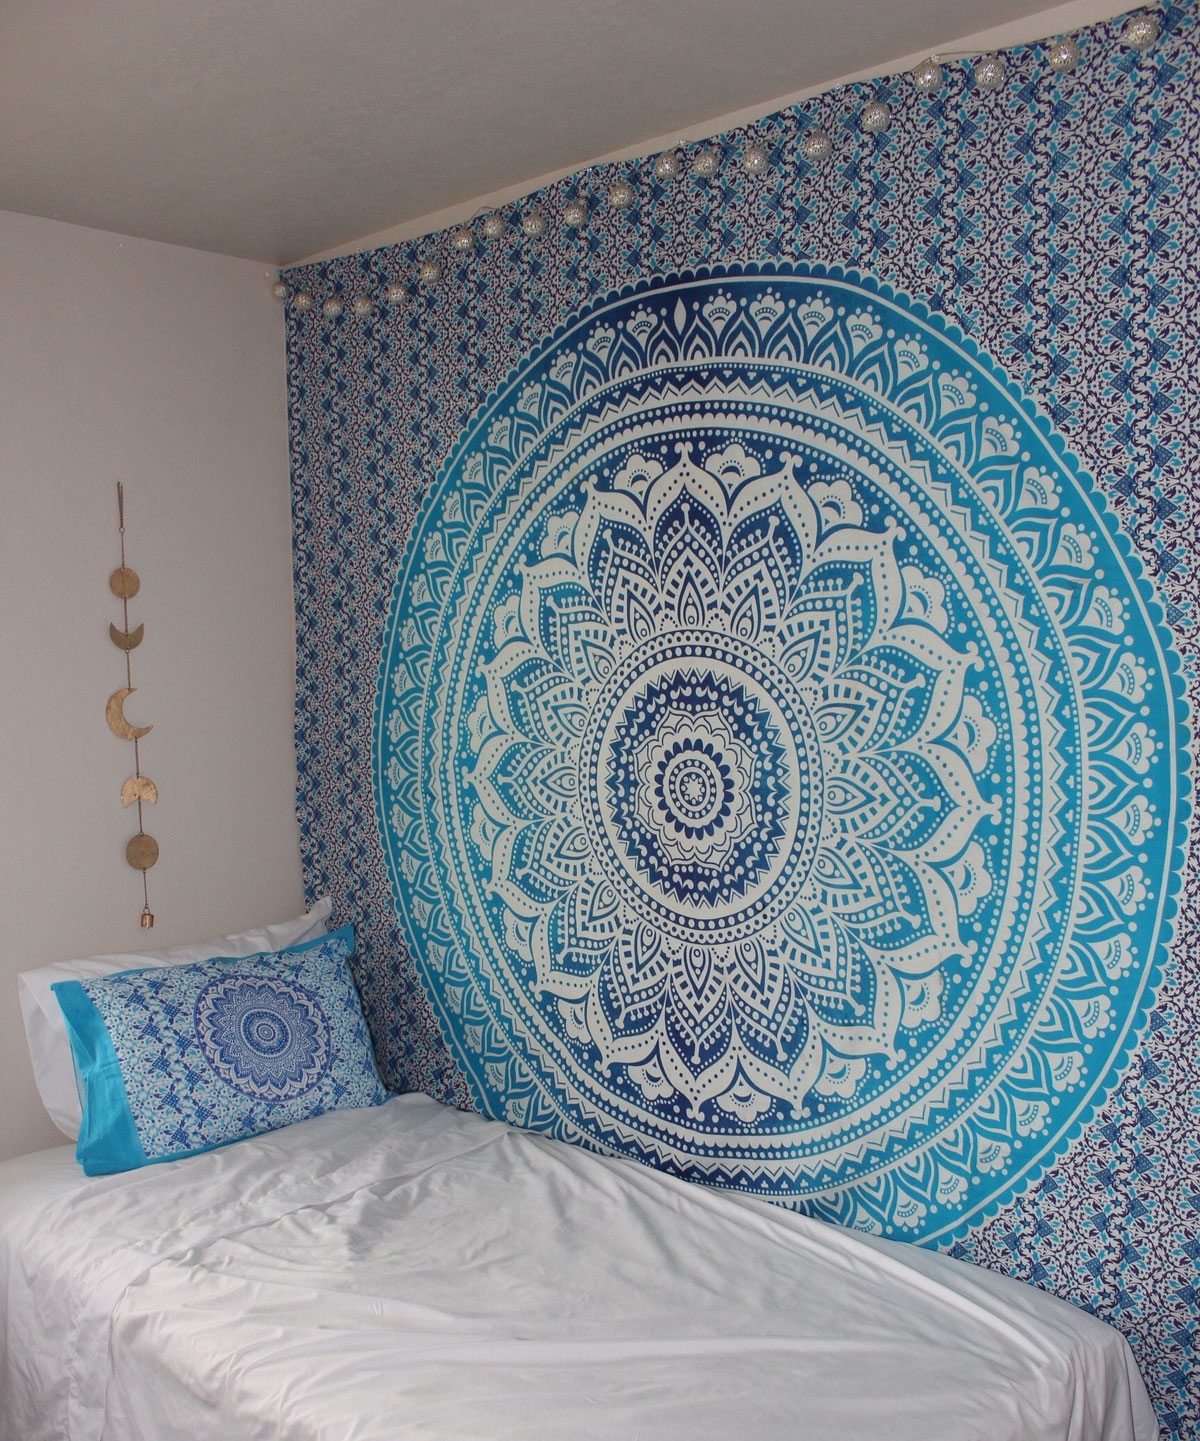 Merveilleux Blue Multi Indian Ombre Mandala Wall Tapestry, Hippie Bedding    RoyalFurnish.com